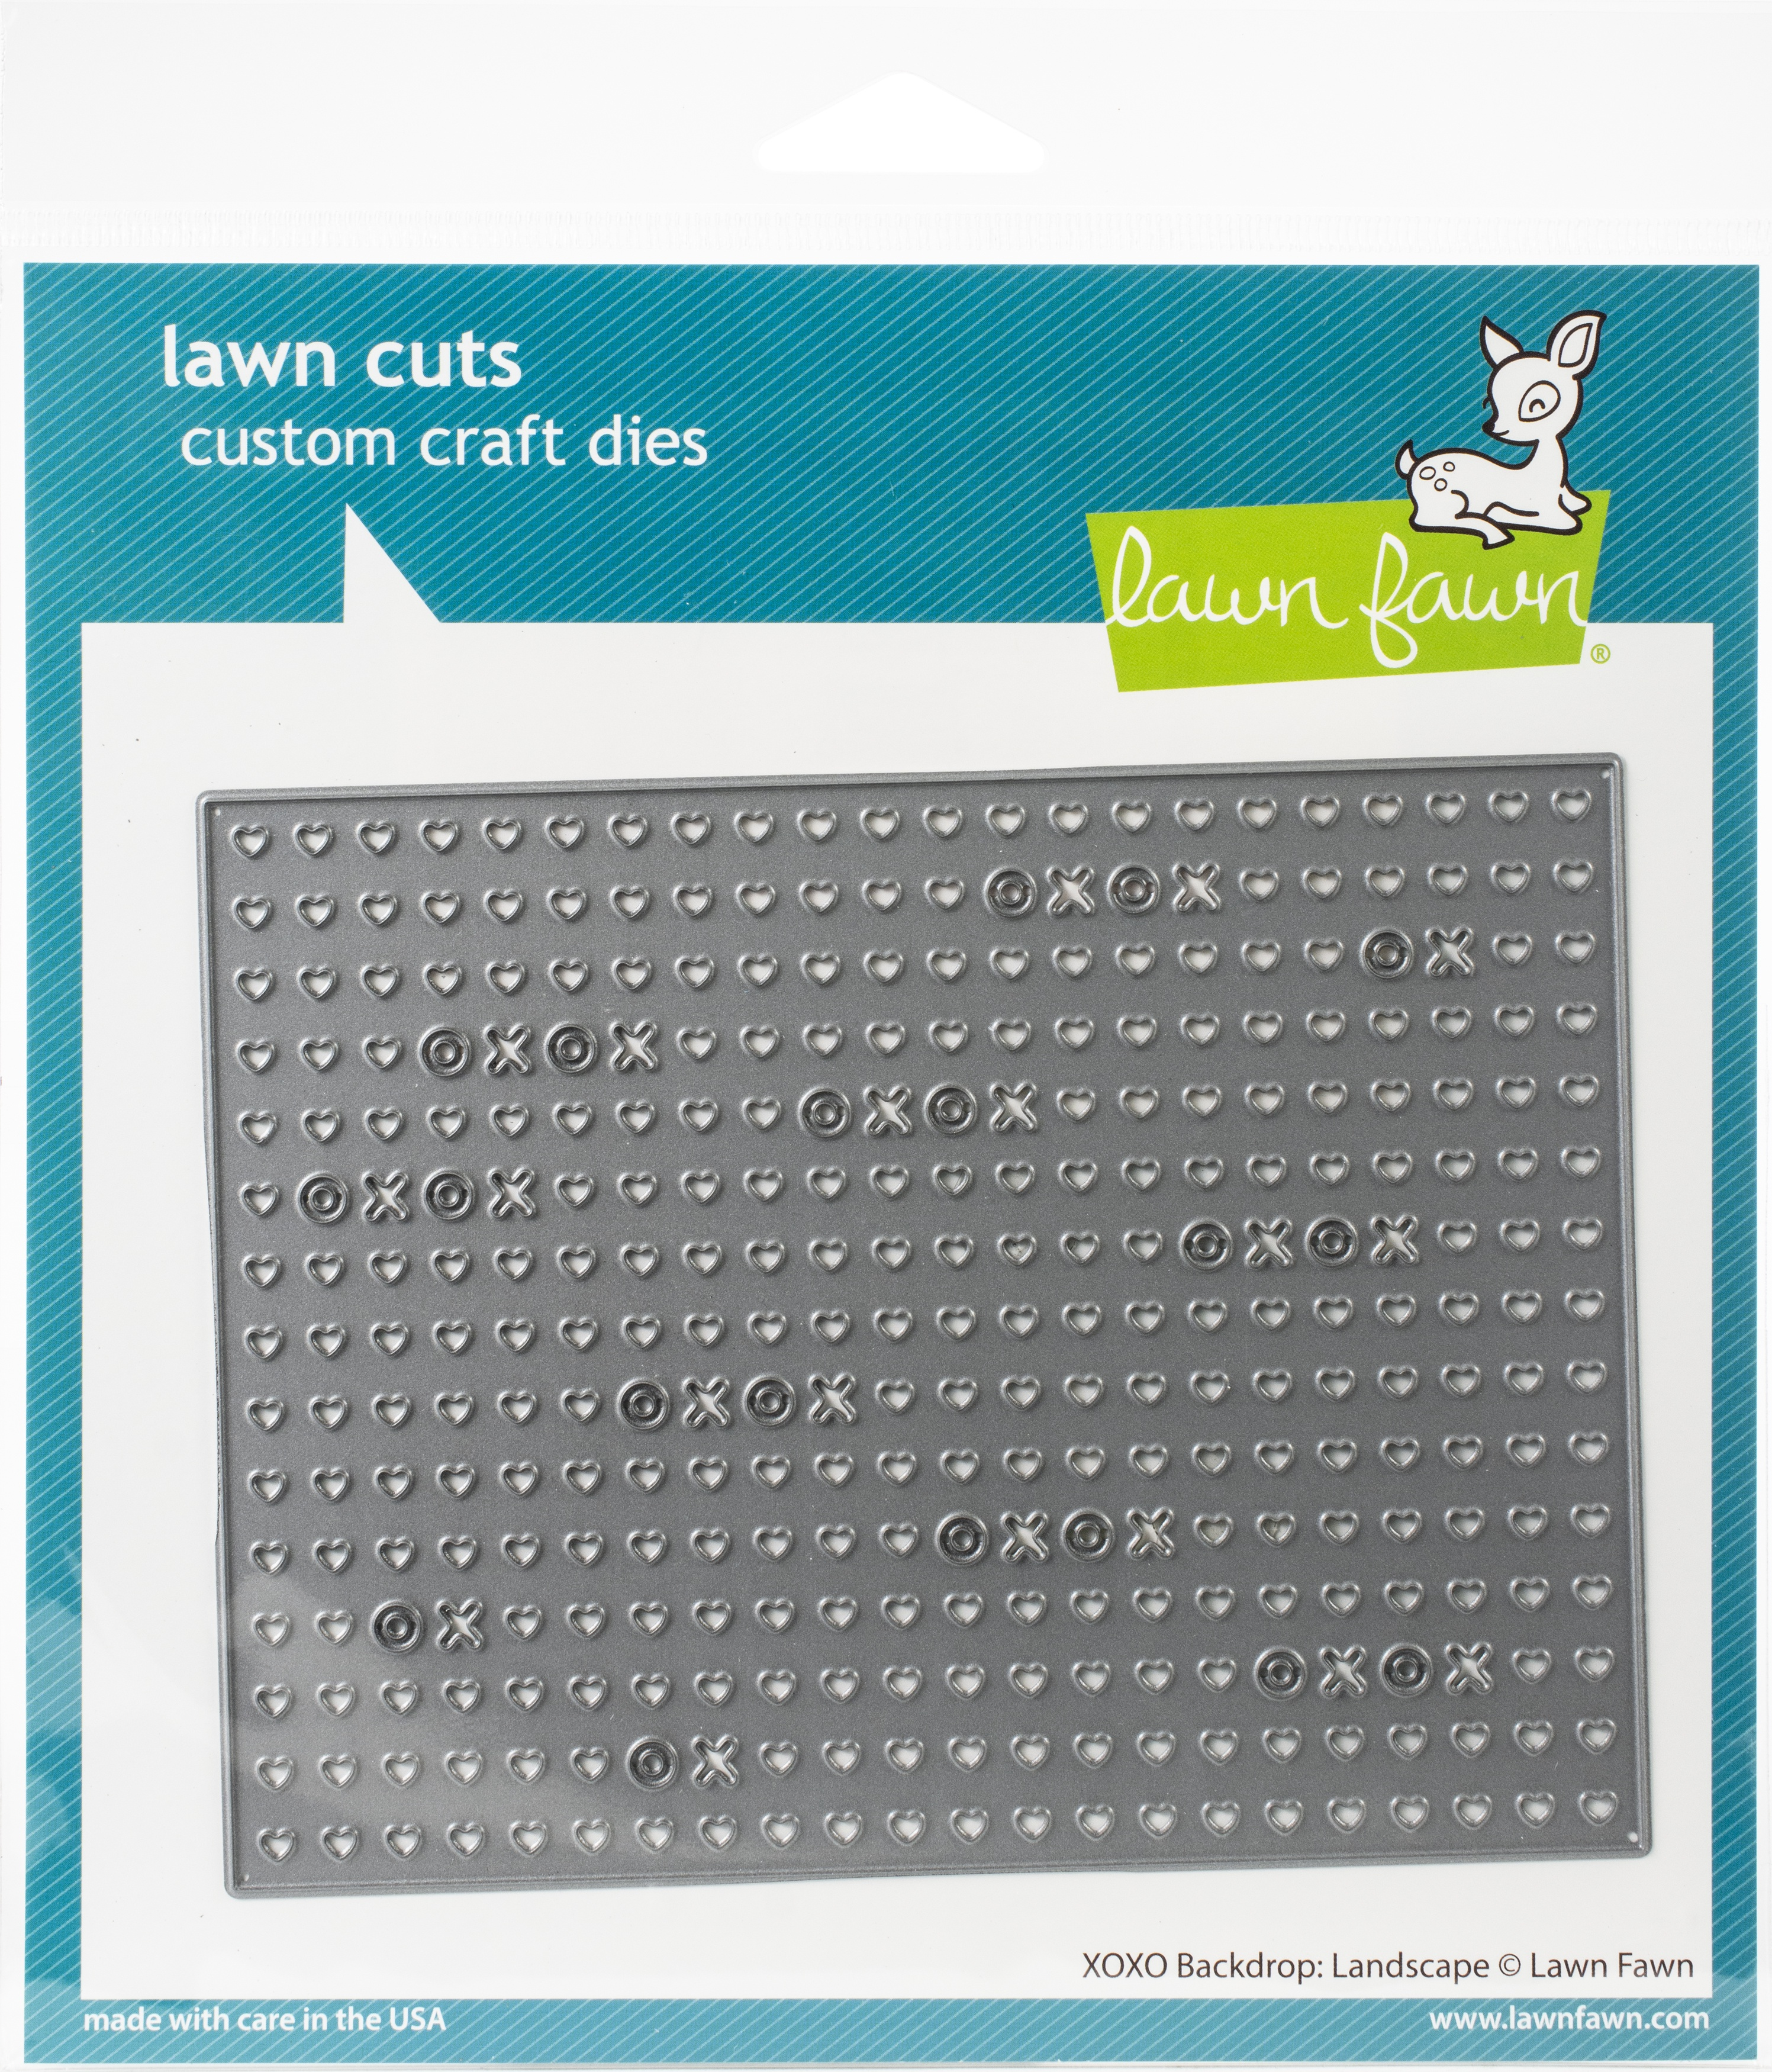 Lawn Cuts Custom Craft Die -XOXO Backdrop: Landscape